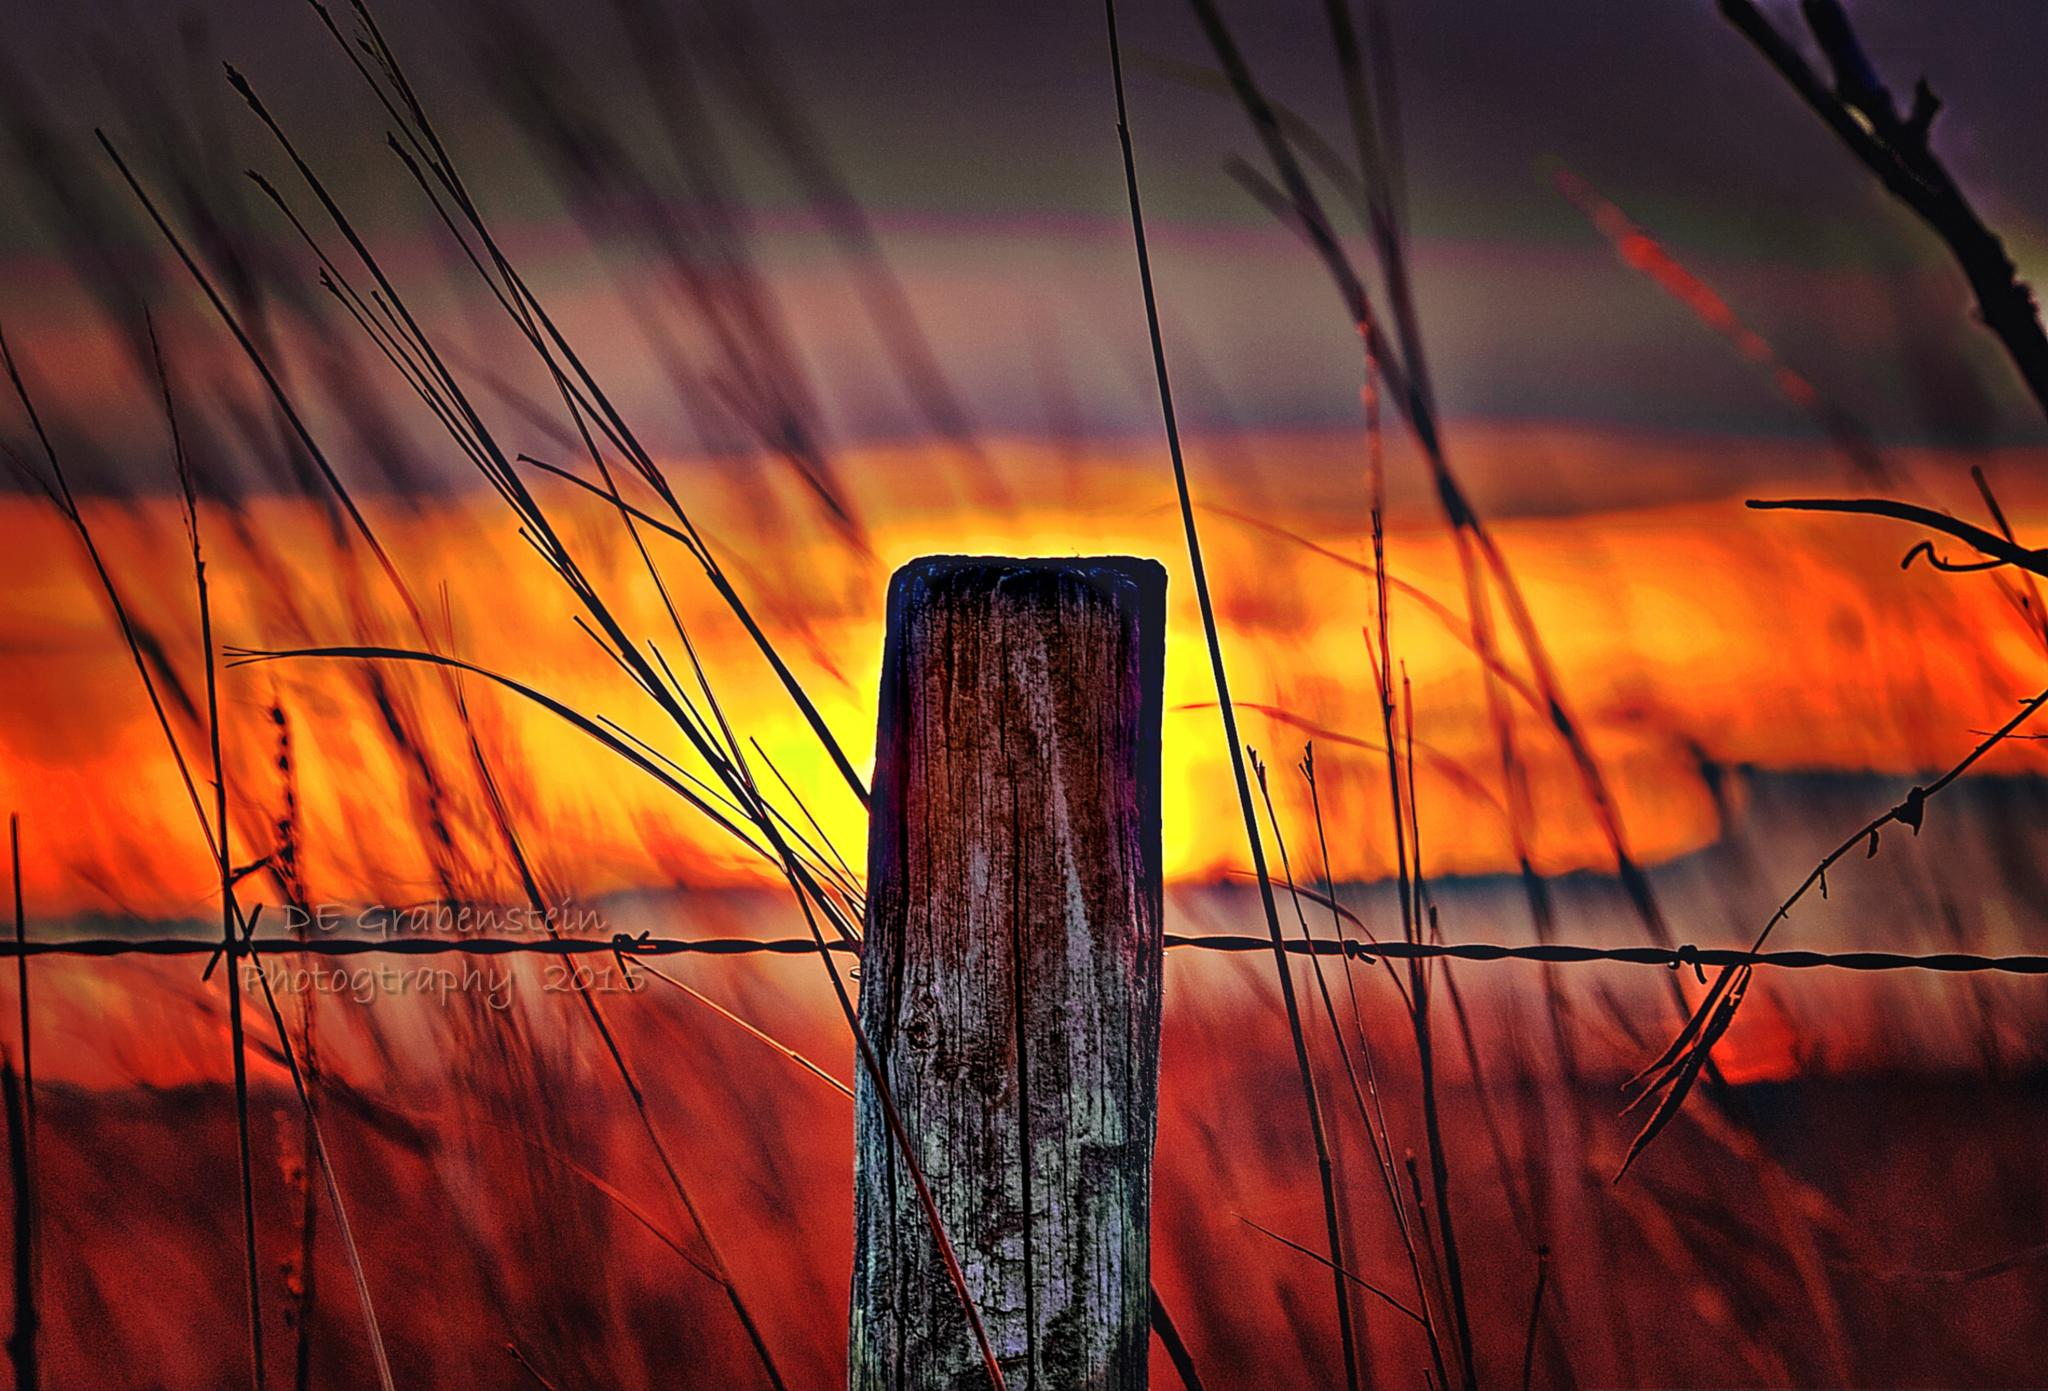 Firey Fence by derrill.grabenstein